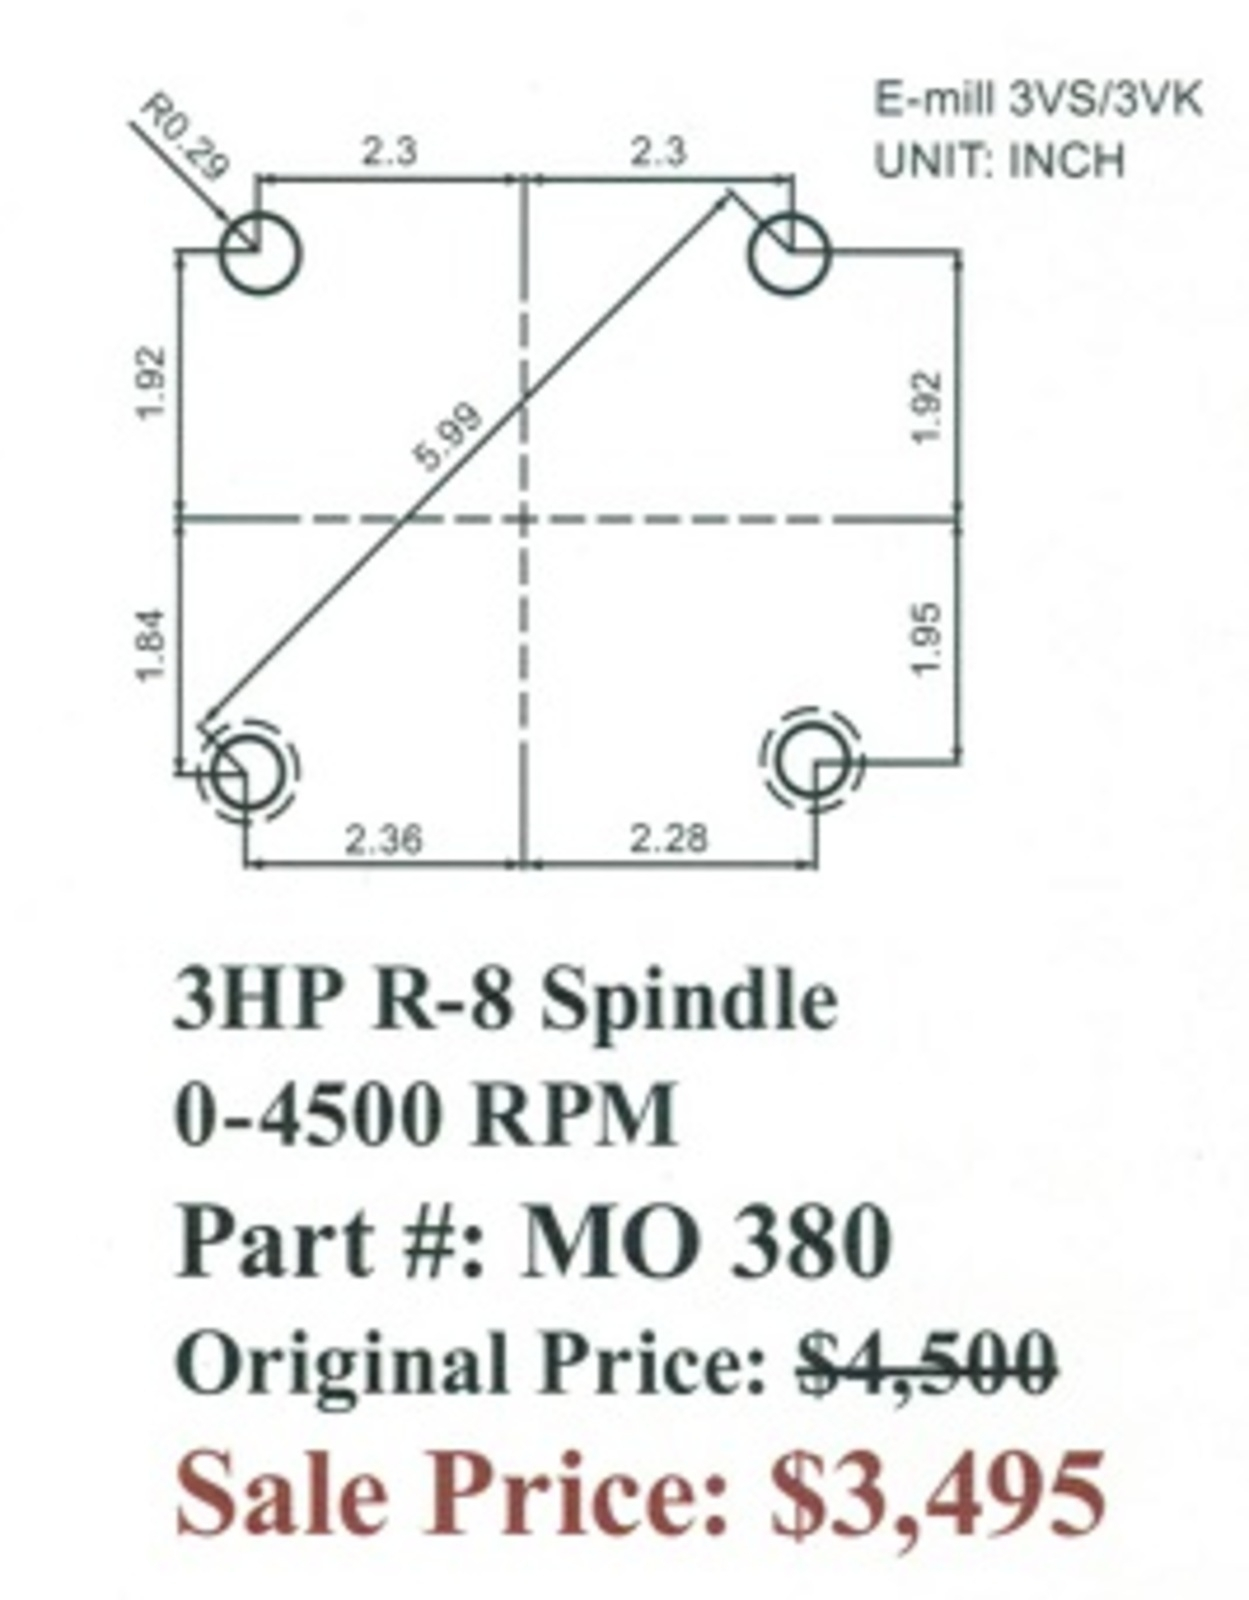 bridgeport series 2 wiring diagram Collection-Acer Bridgeport Style E mill Milling Head R 8 Spindle 6-b